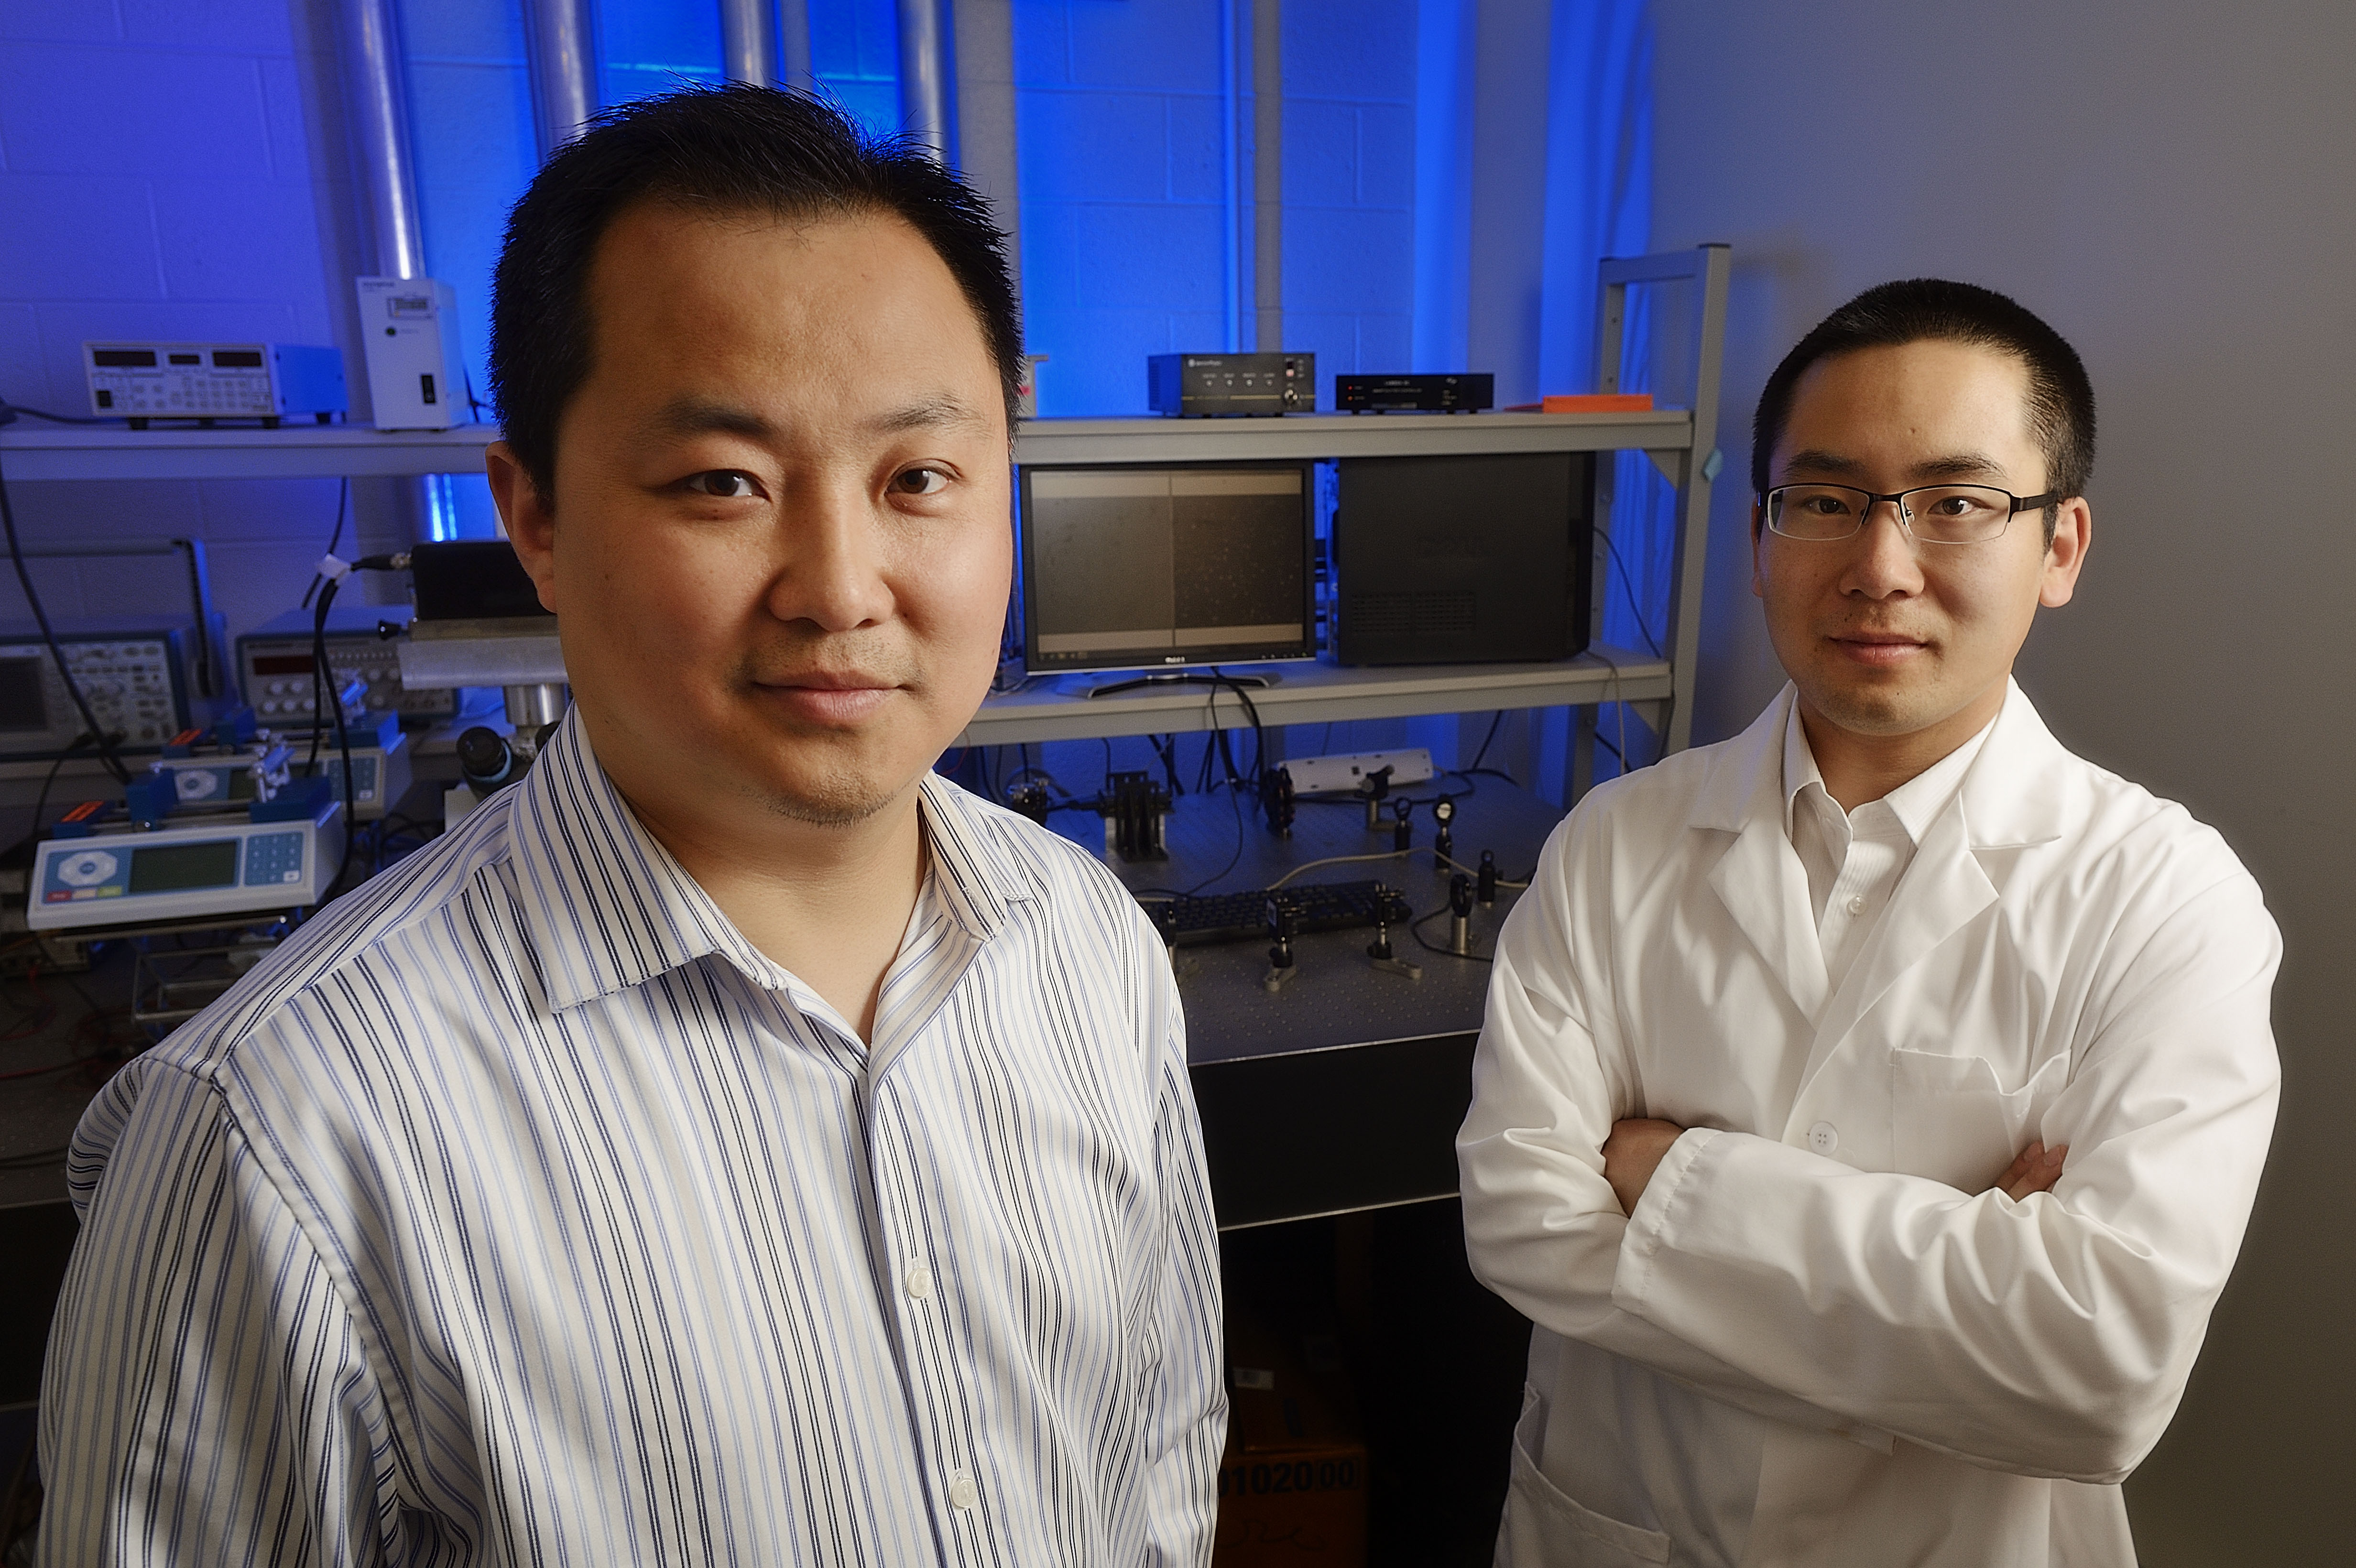 Chemical engineer Chang Lu and his graduate student Zhenning Cao